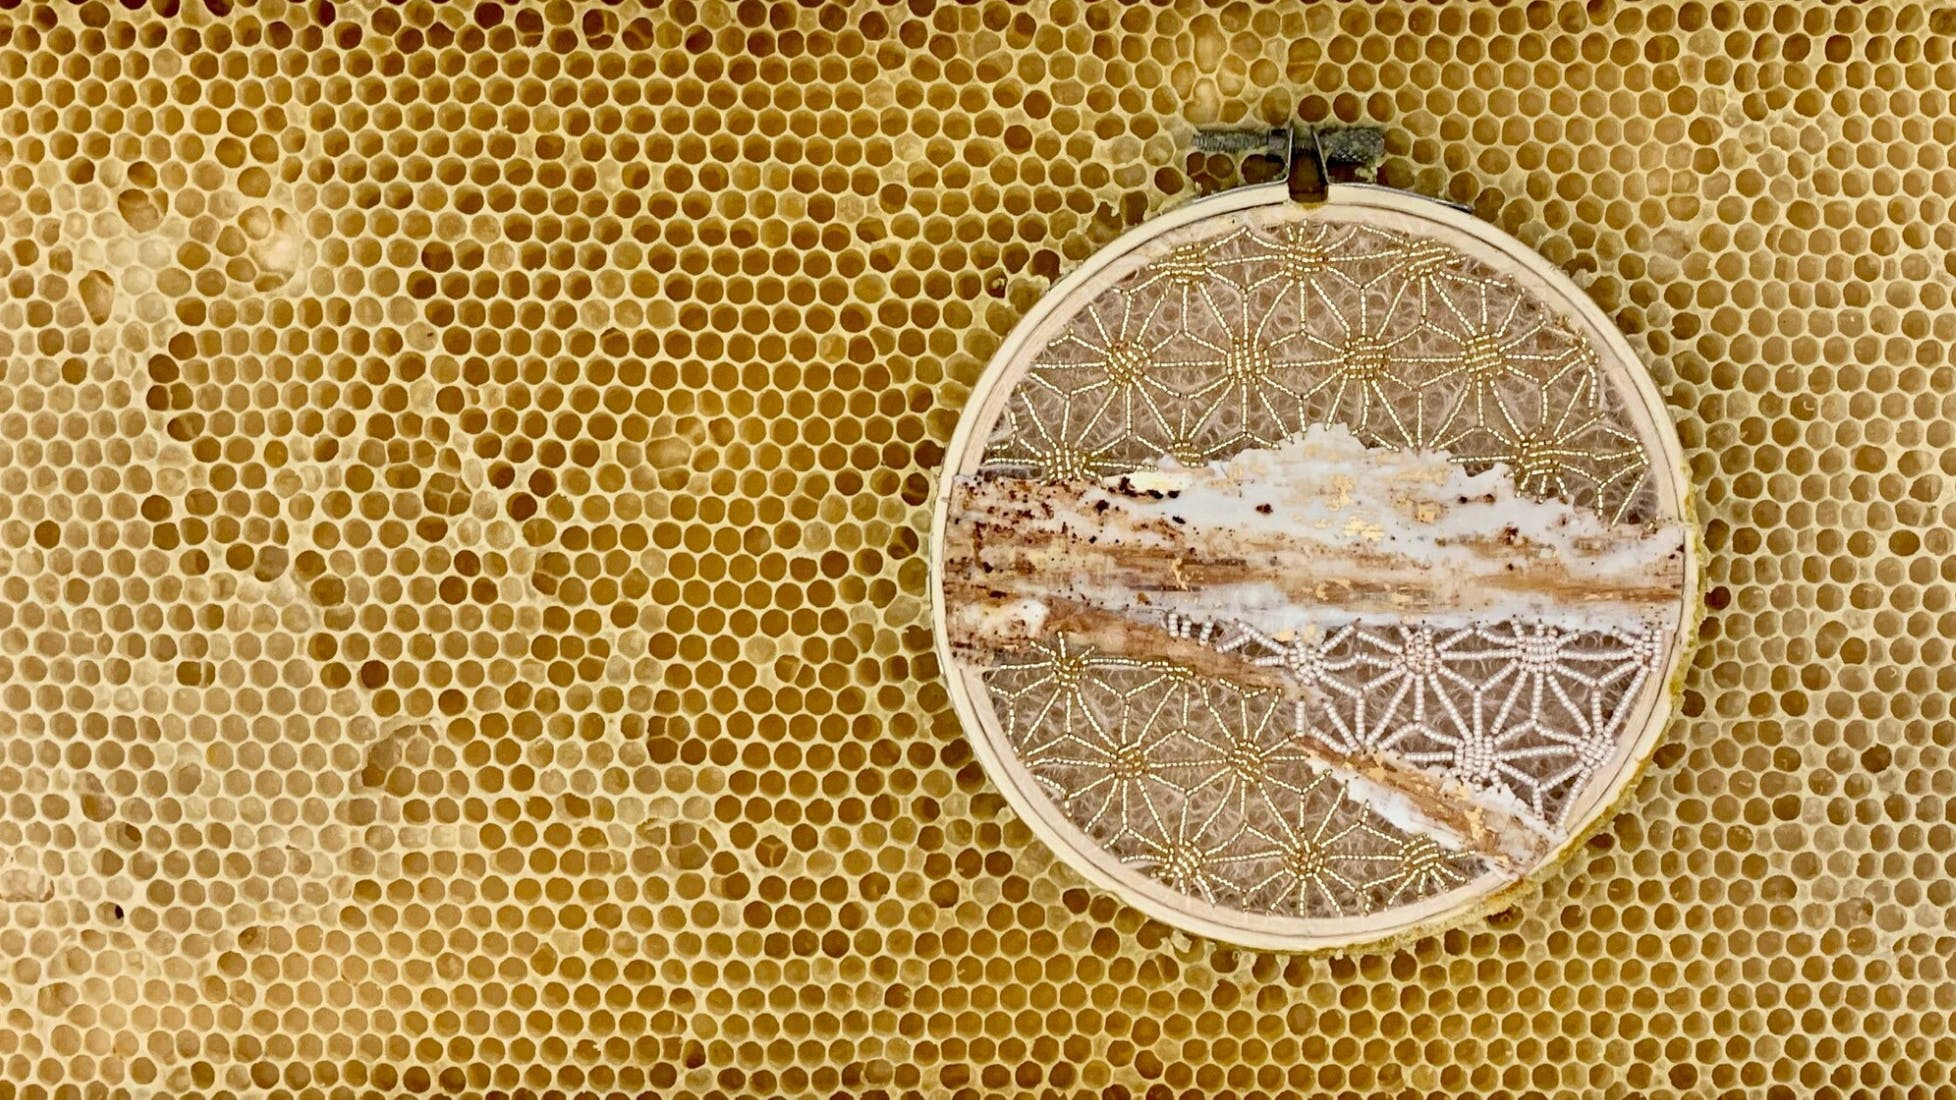 Mixed-media collage in an embroidery hoop embedded in honeycomb panel